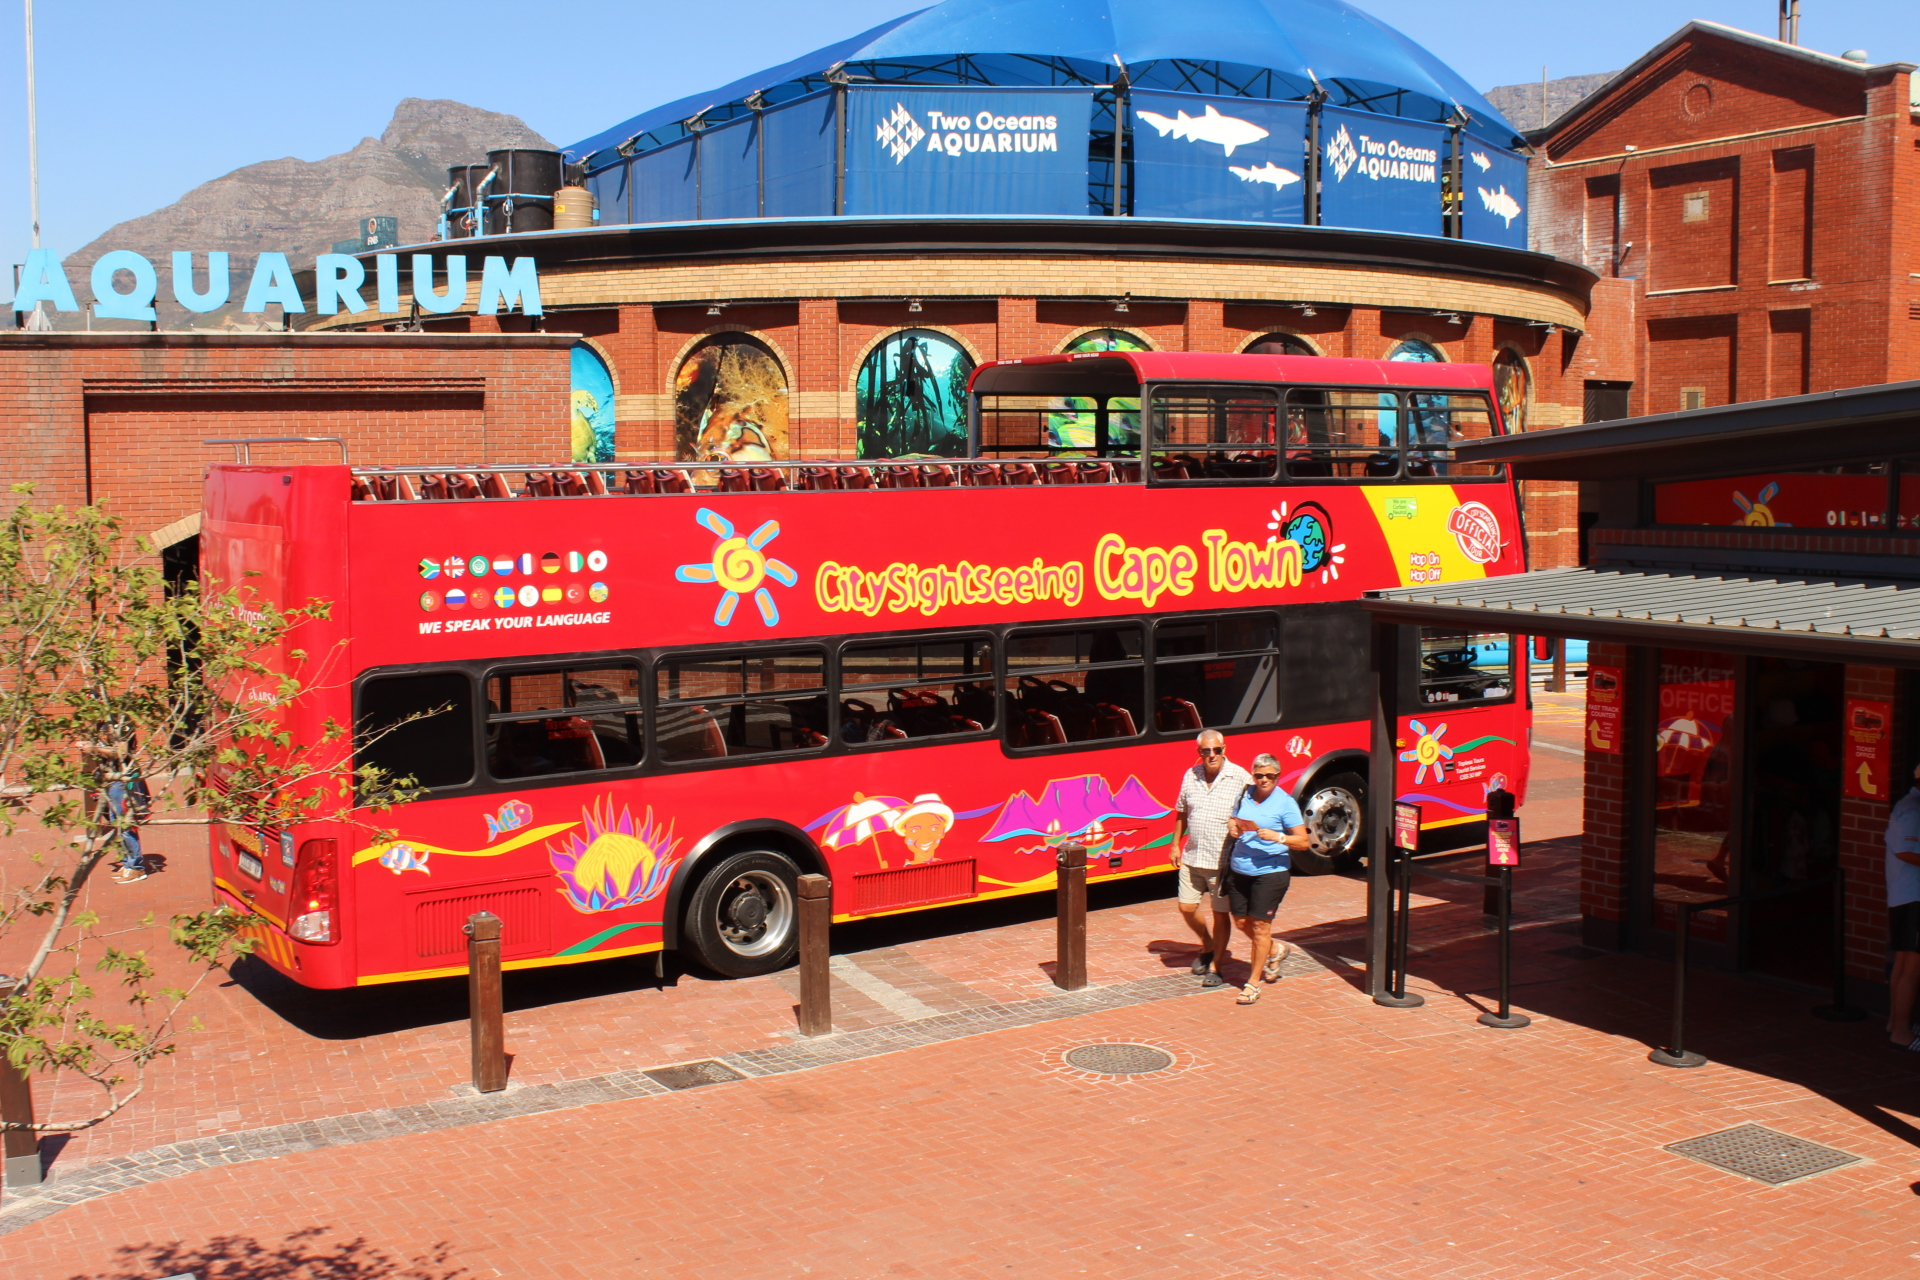 2018 South Africa Trip, Part 7: City Sightseeing Tours of Cape Town